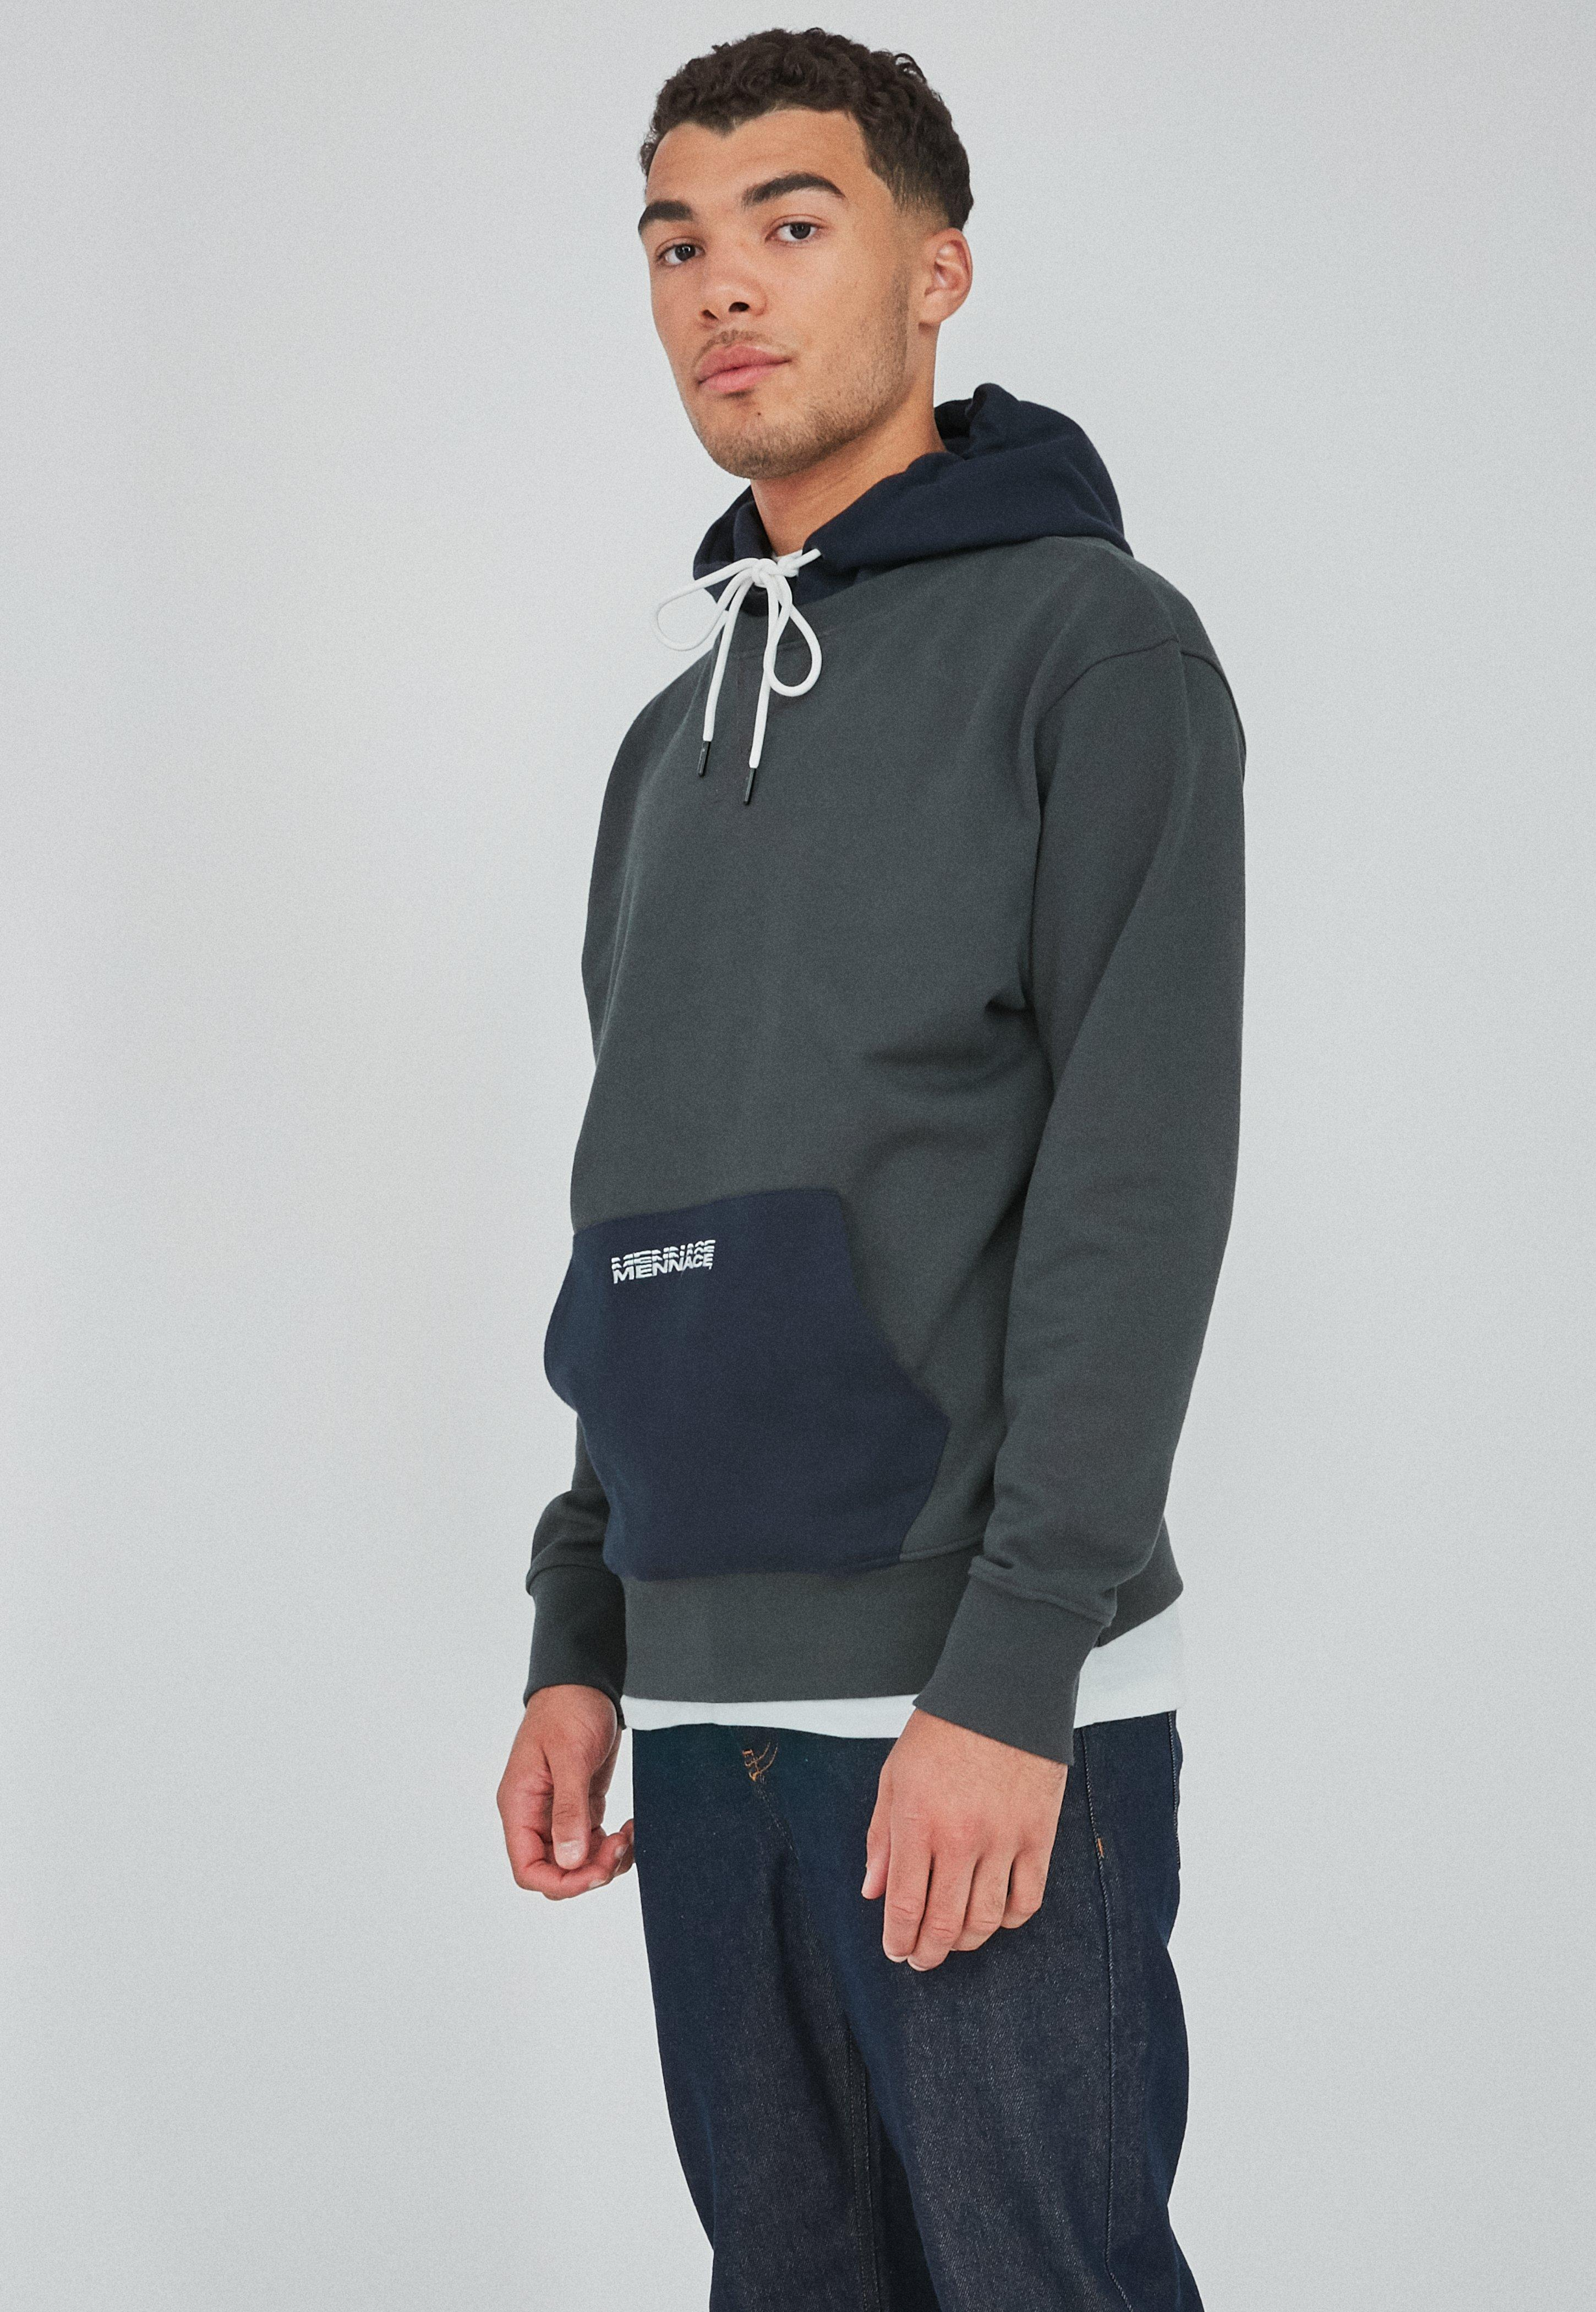 premium selection 66be9 08199 Charcoal Heavyweight Contrast Texture Hoodie